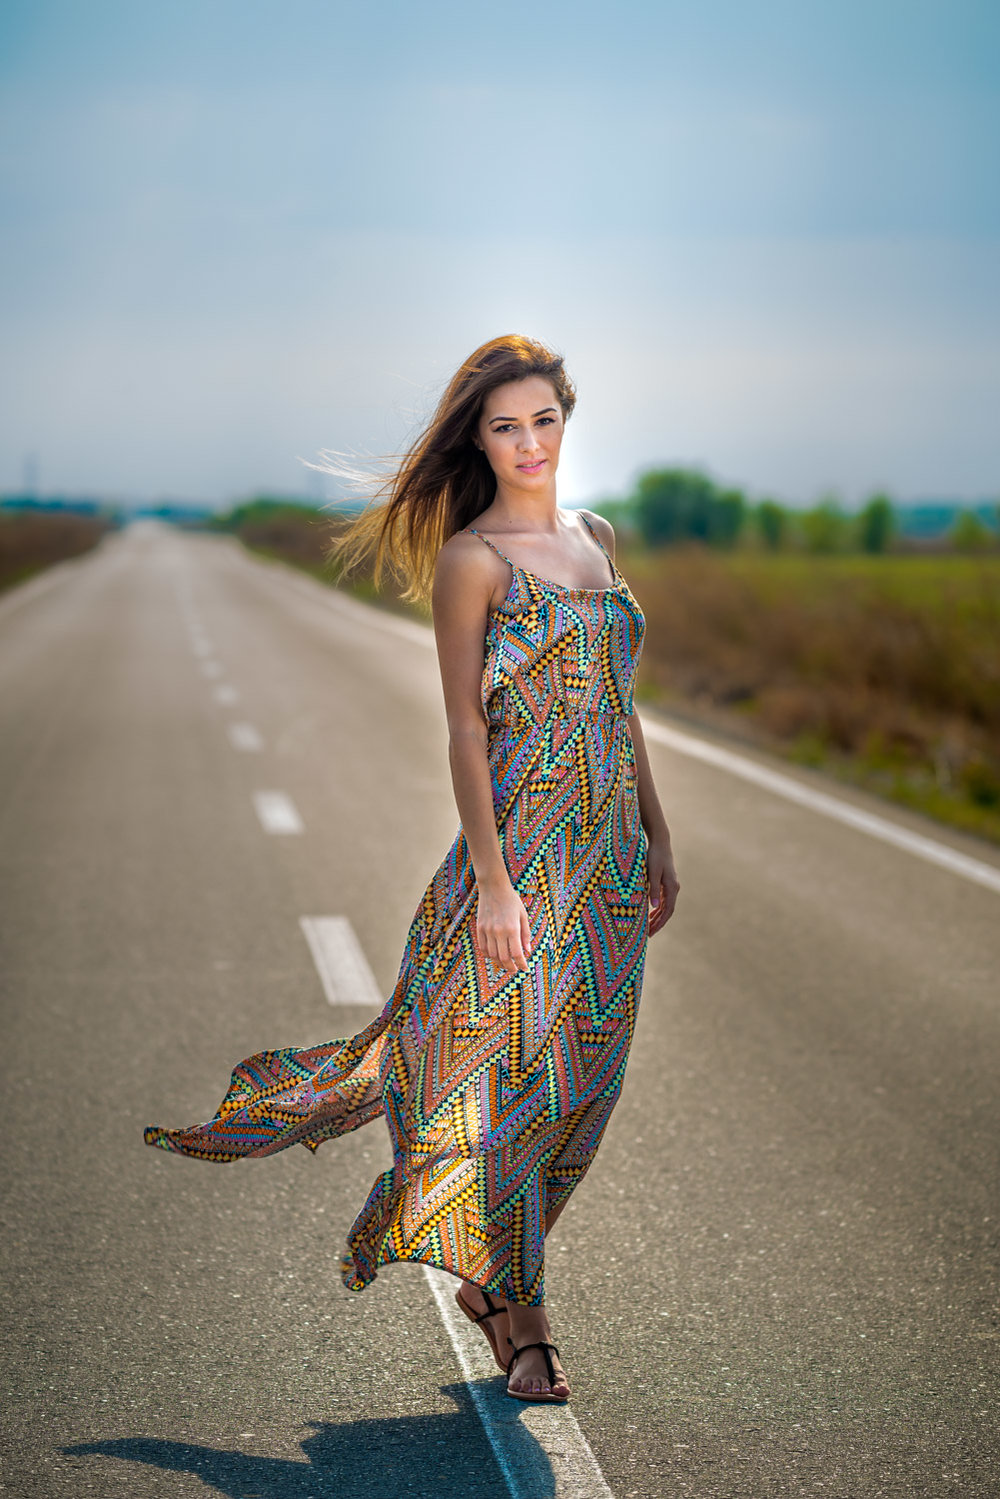 Portrait Photographer in Luxembourg | Catalin Burlacu Photography | www.ishootcolors.com